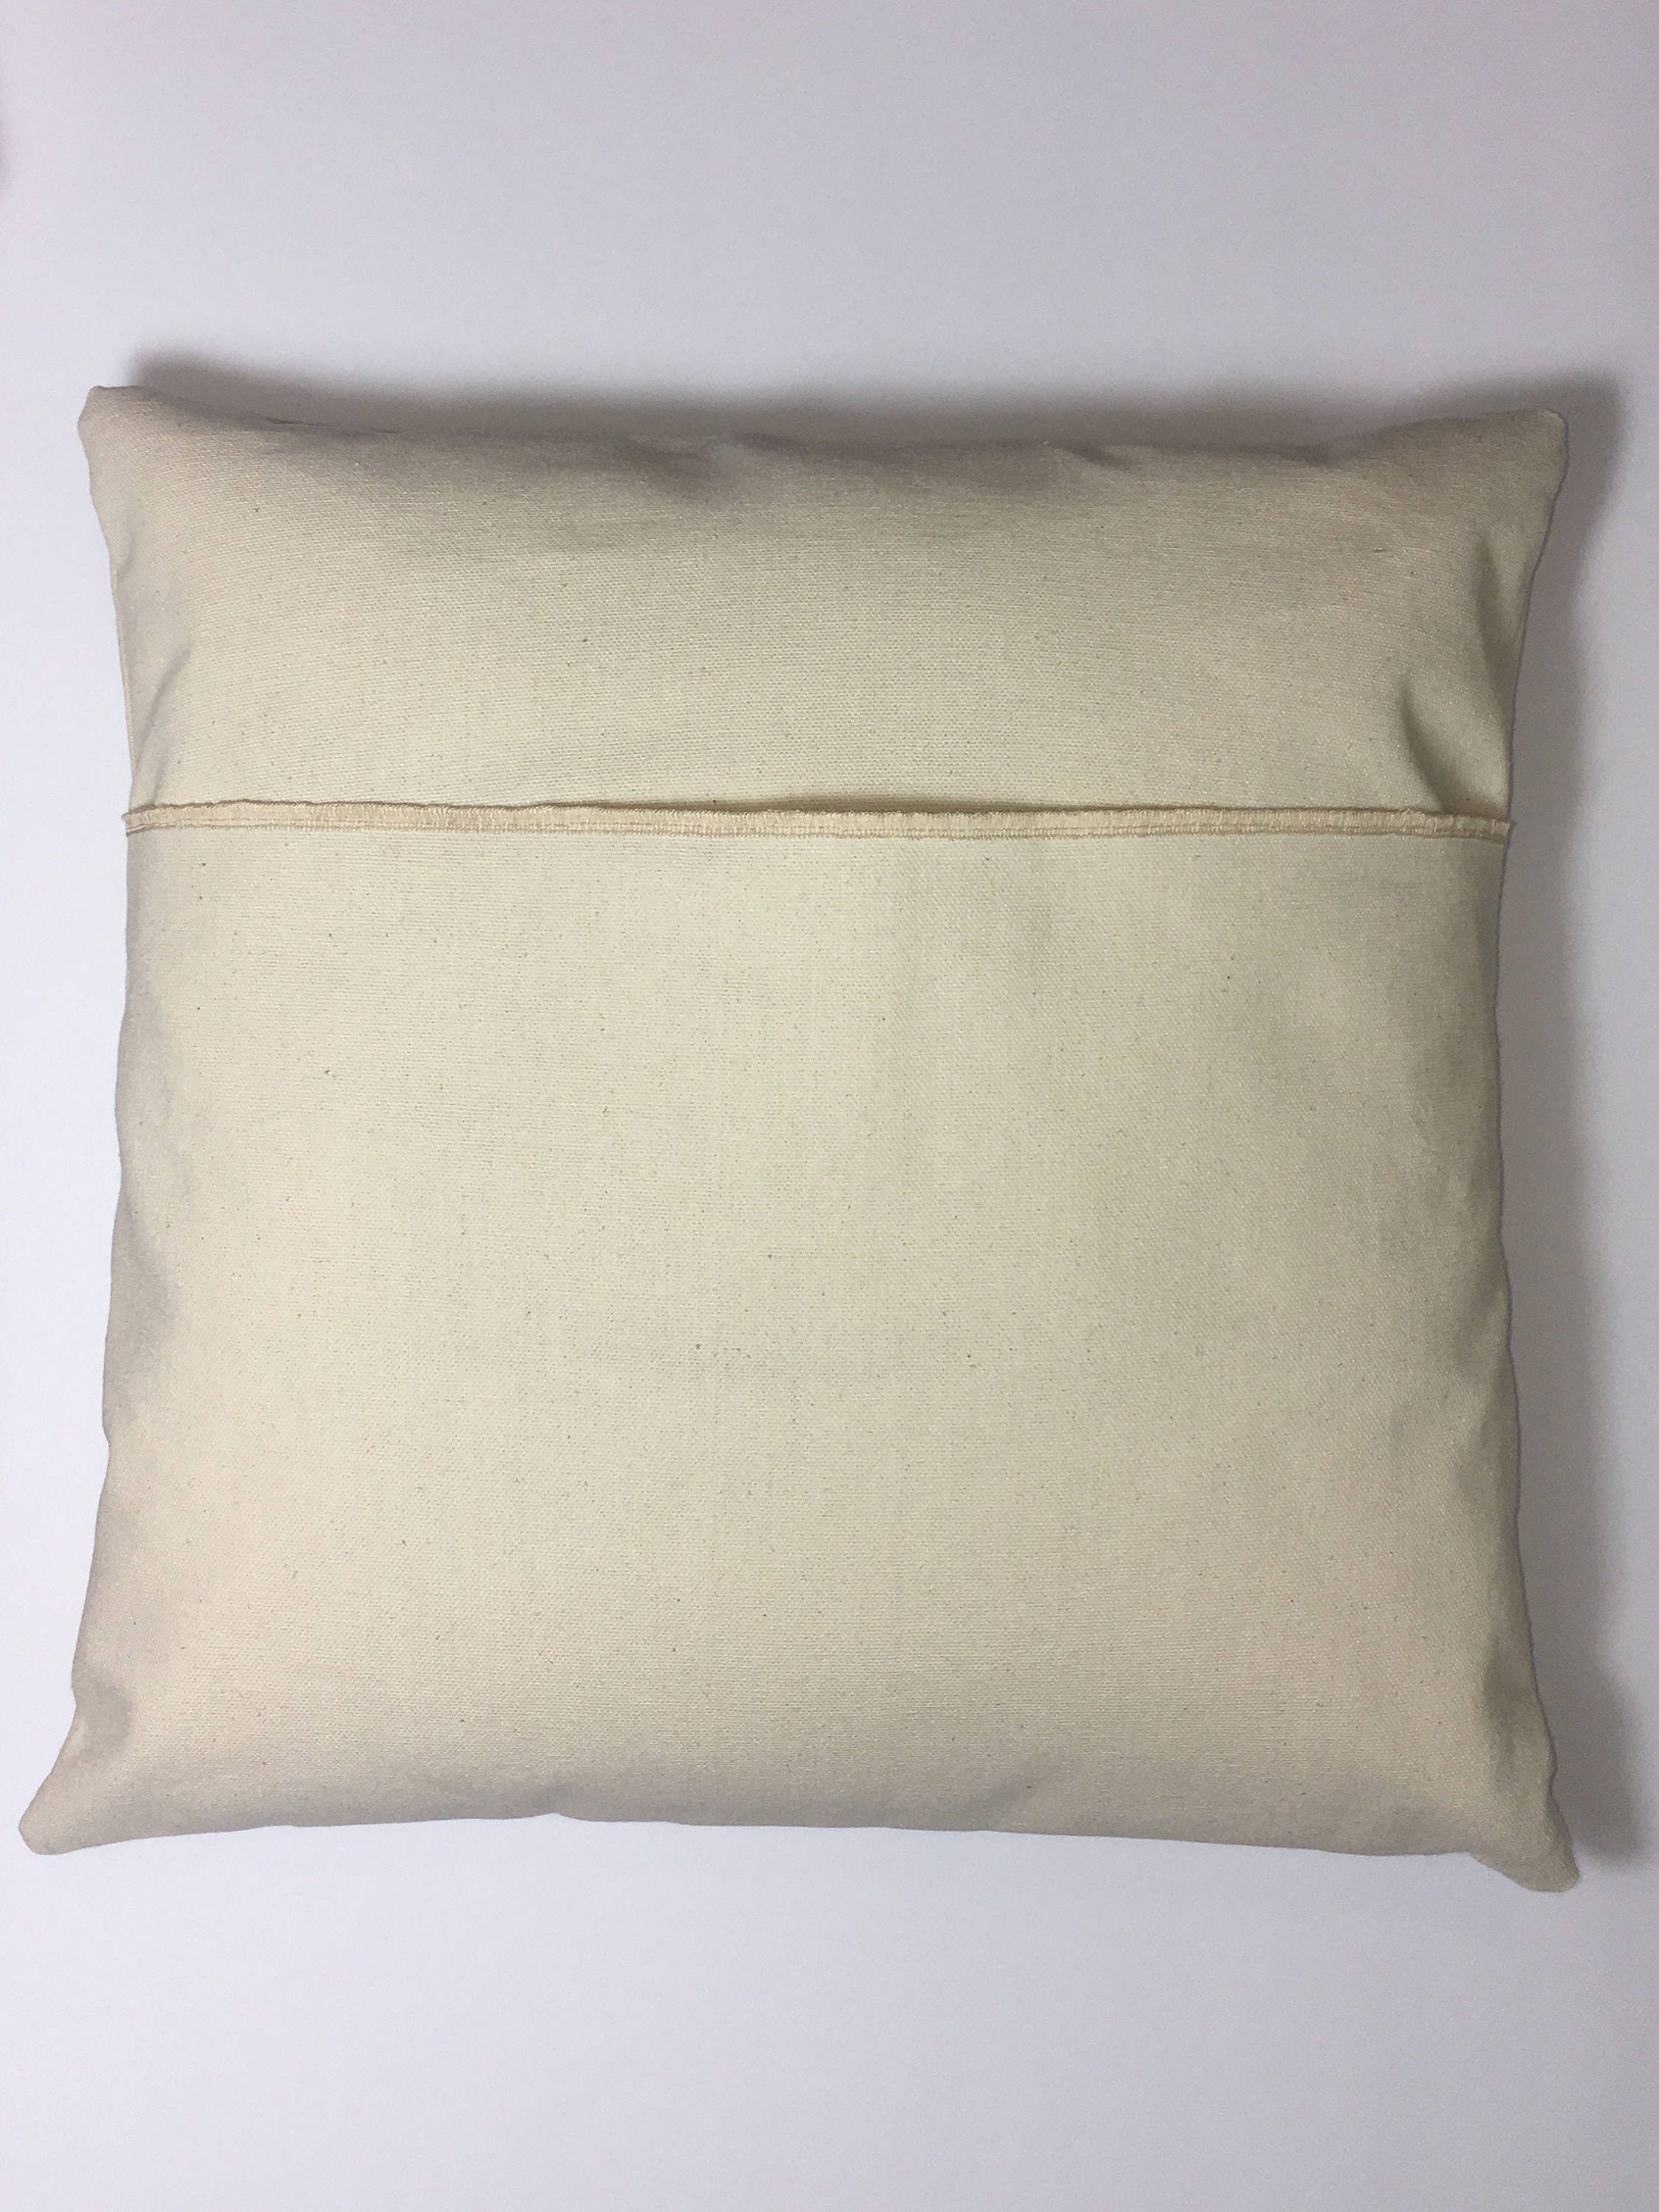 Blank Decorative Pillow Covers : Blank Canvas pillow cover / HTV blanks / blank pillow cover / DIY pillow / canvas pillow cover ...